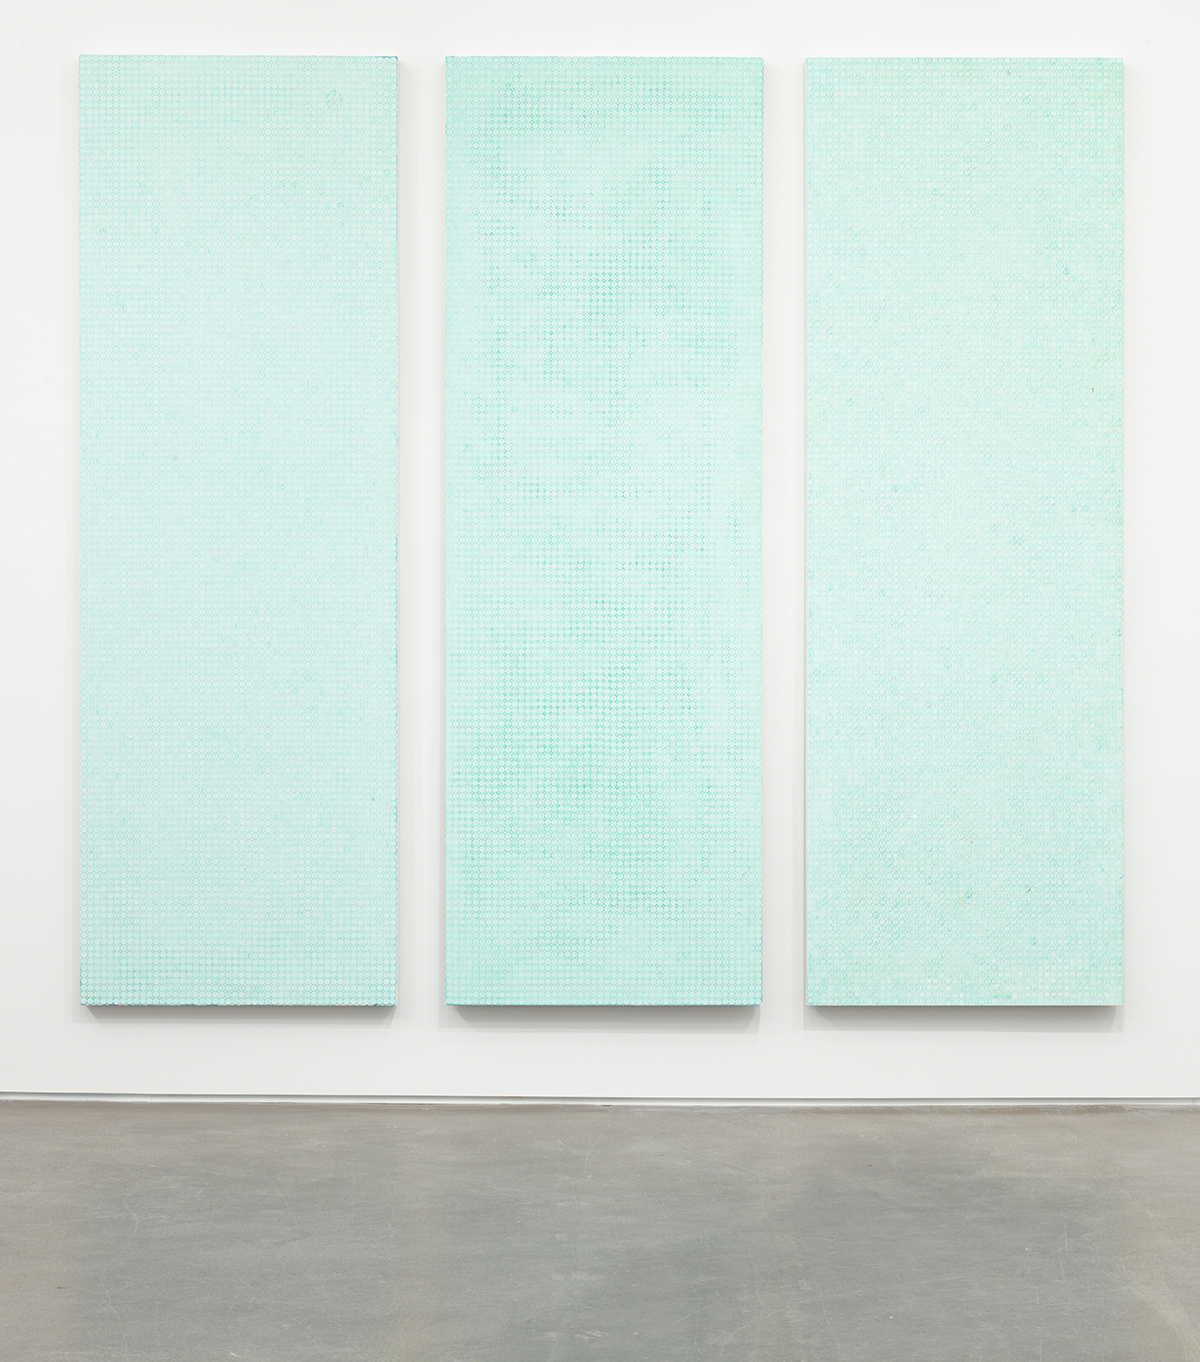 Nick Darmstaedter This, That and The Other 2012 Oxidated copper on canvas 108 x 36 inches each